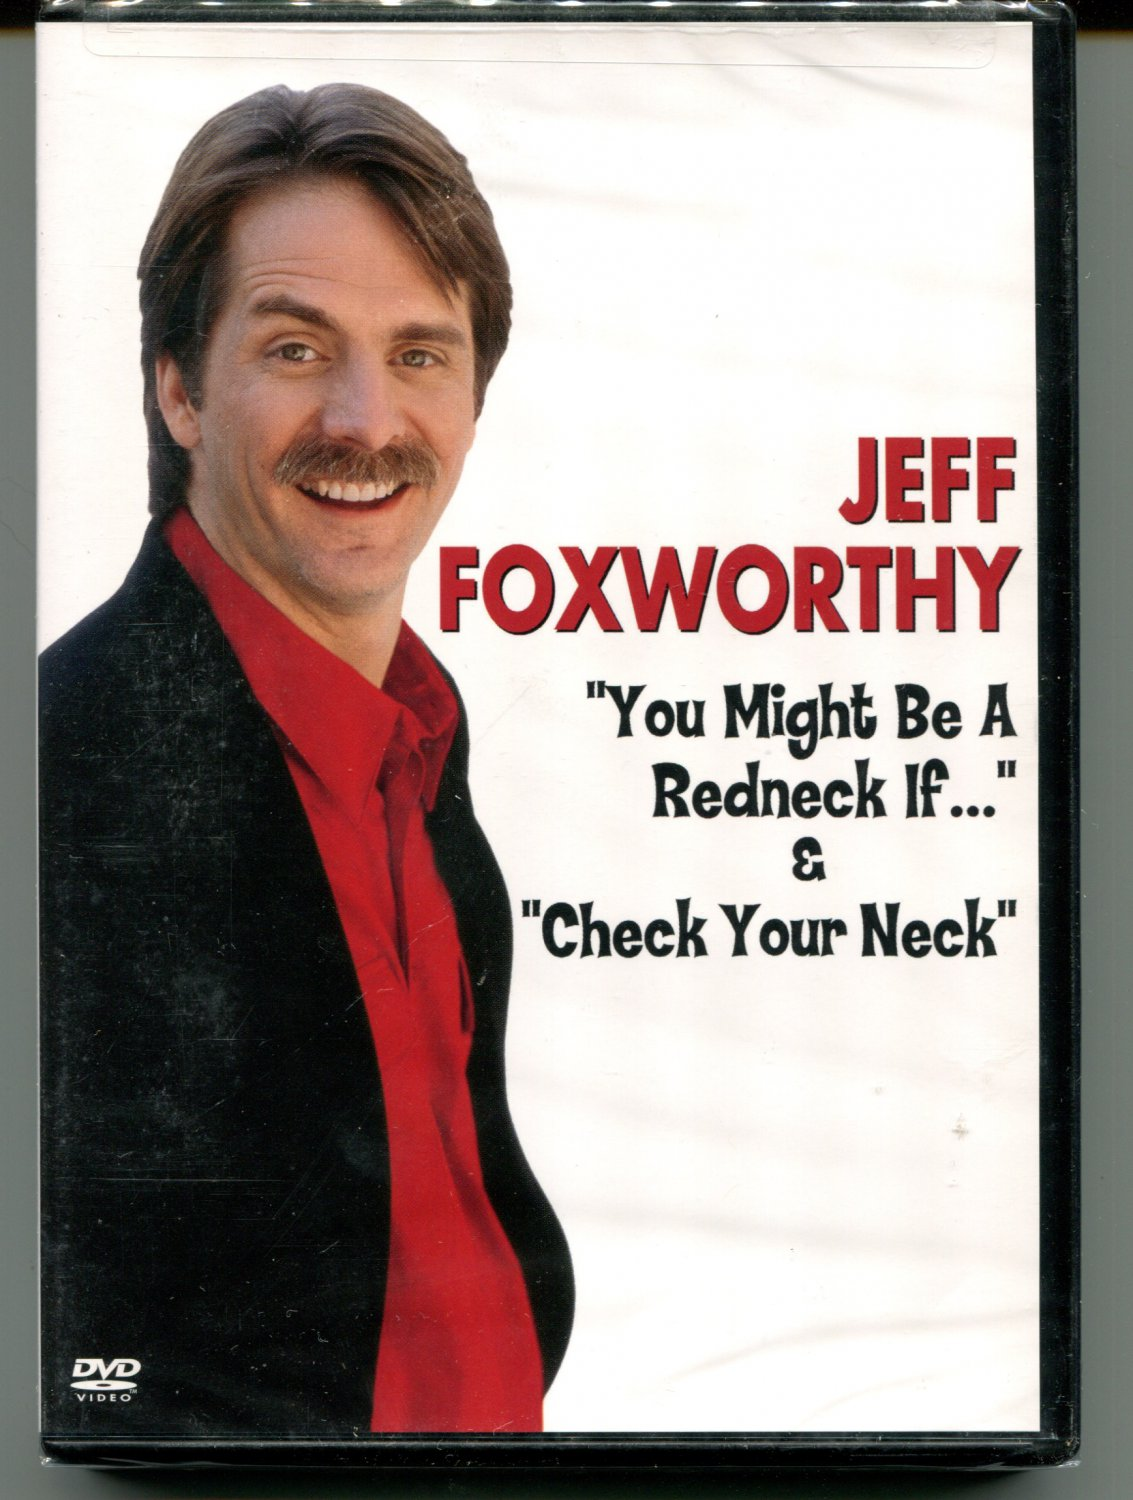 Jeff Foxworthy - You Might Be a Redneck If...& Check your neck.